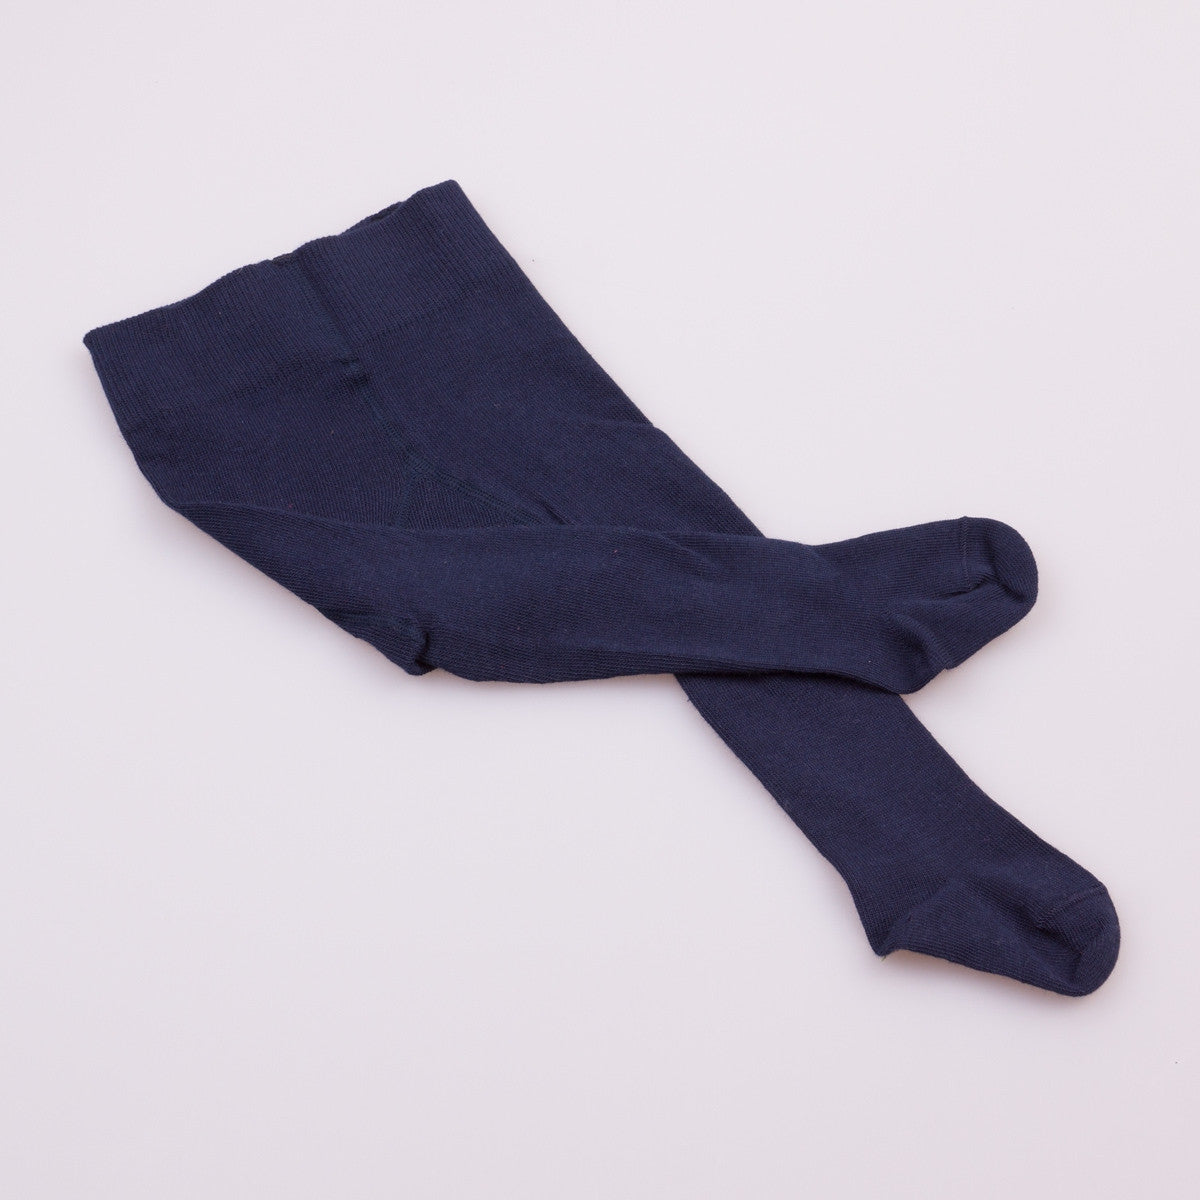 Grodo Children's Tights in 80% Merino Wool 18% Cotton 2% Lycra